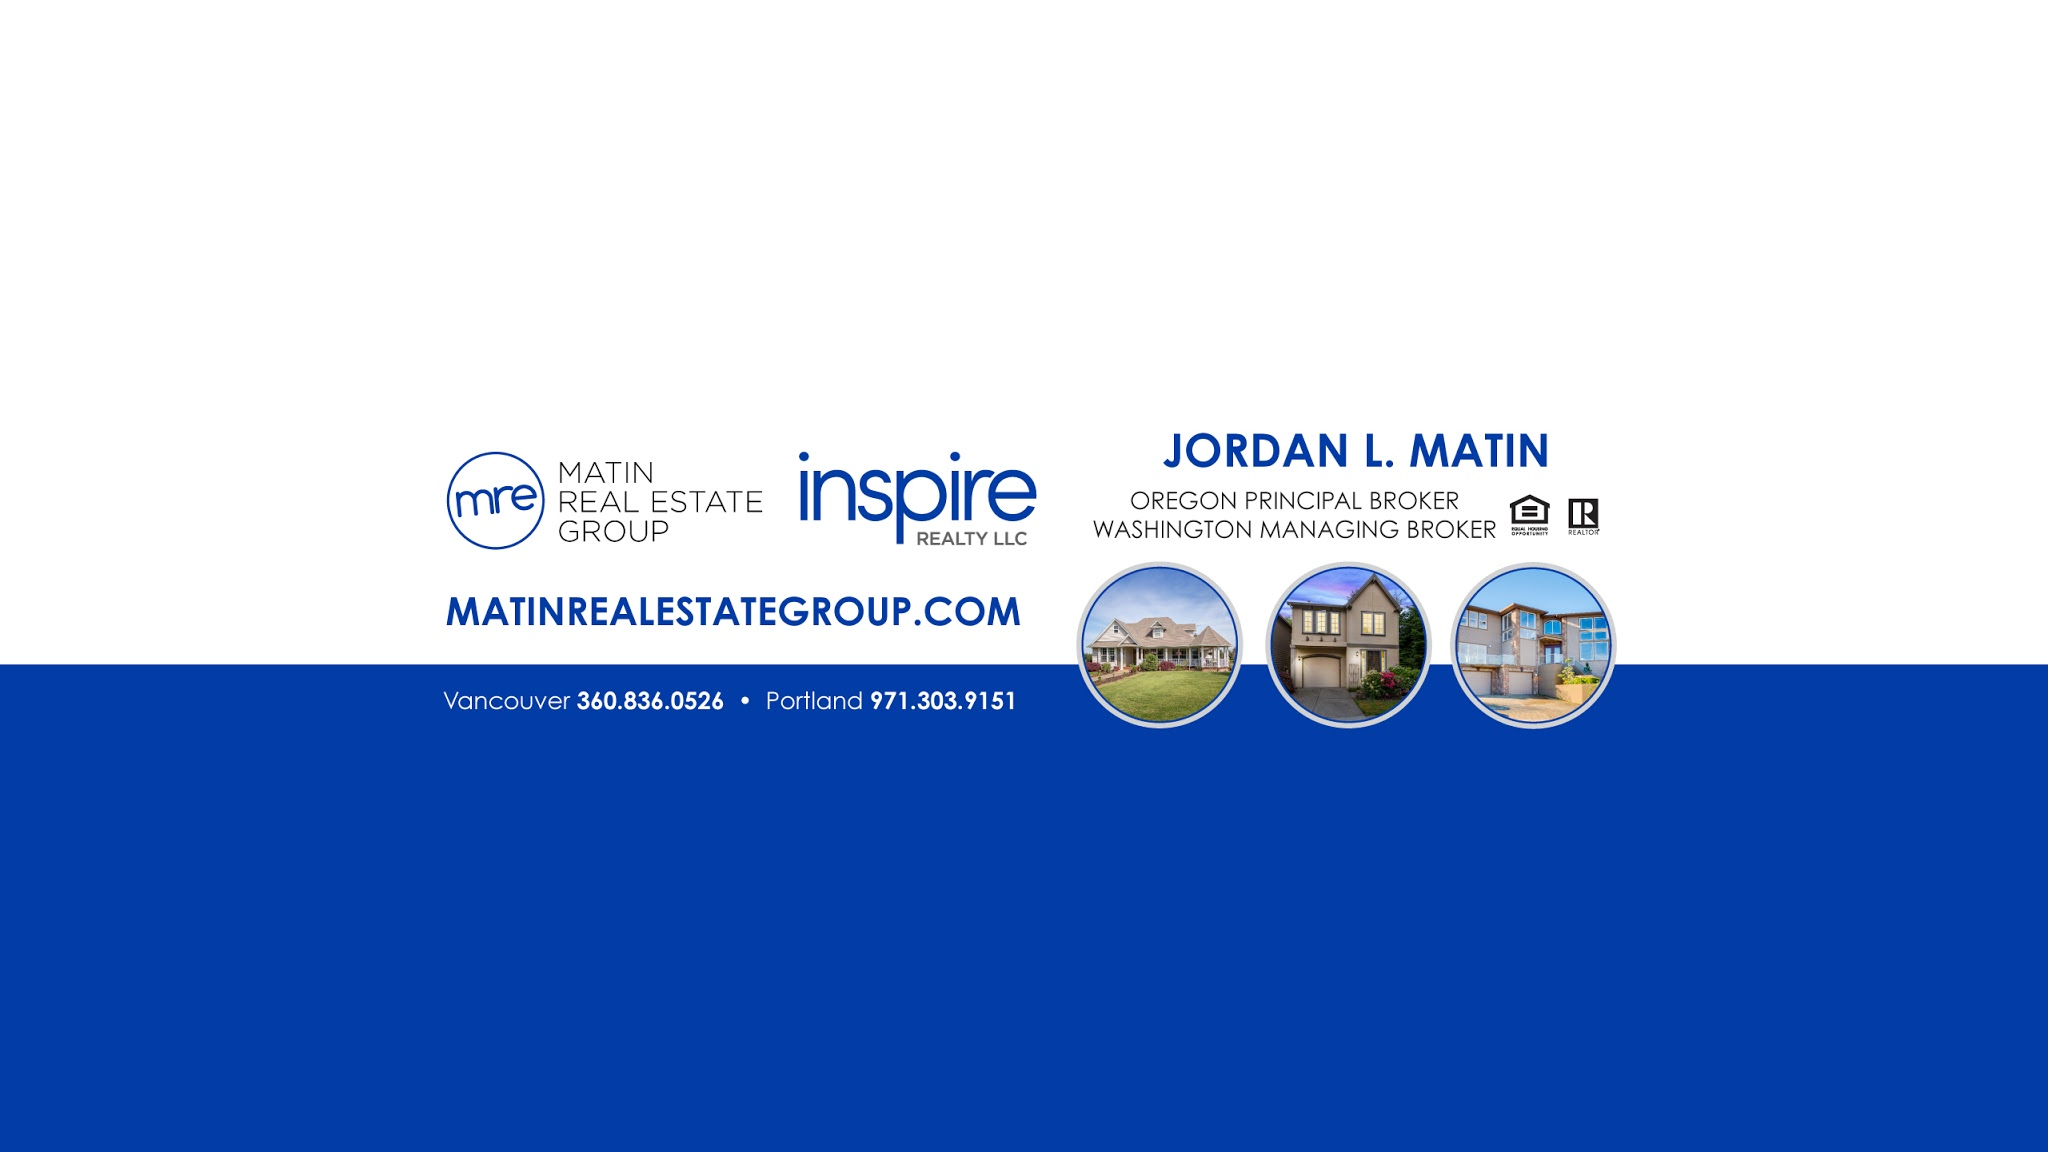 Matin Real Estate Group – Real Estate Agents Portland Oregon - Inspire Realty | 5441 SW Macadam Ave #208, Portland, OR, 97239 | +1 (503) 622-9624